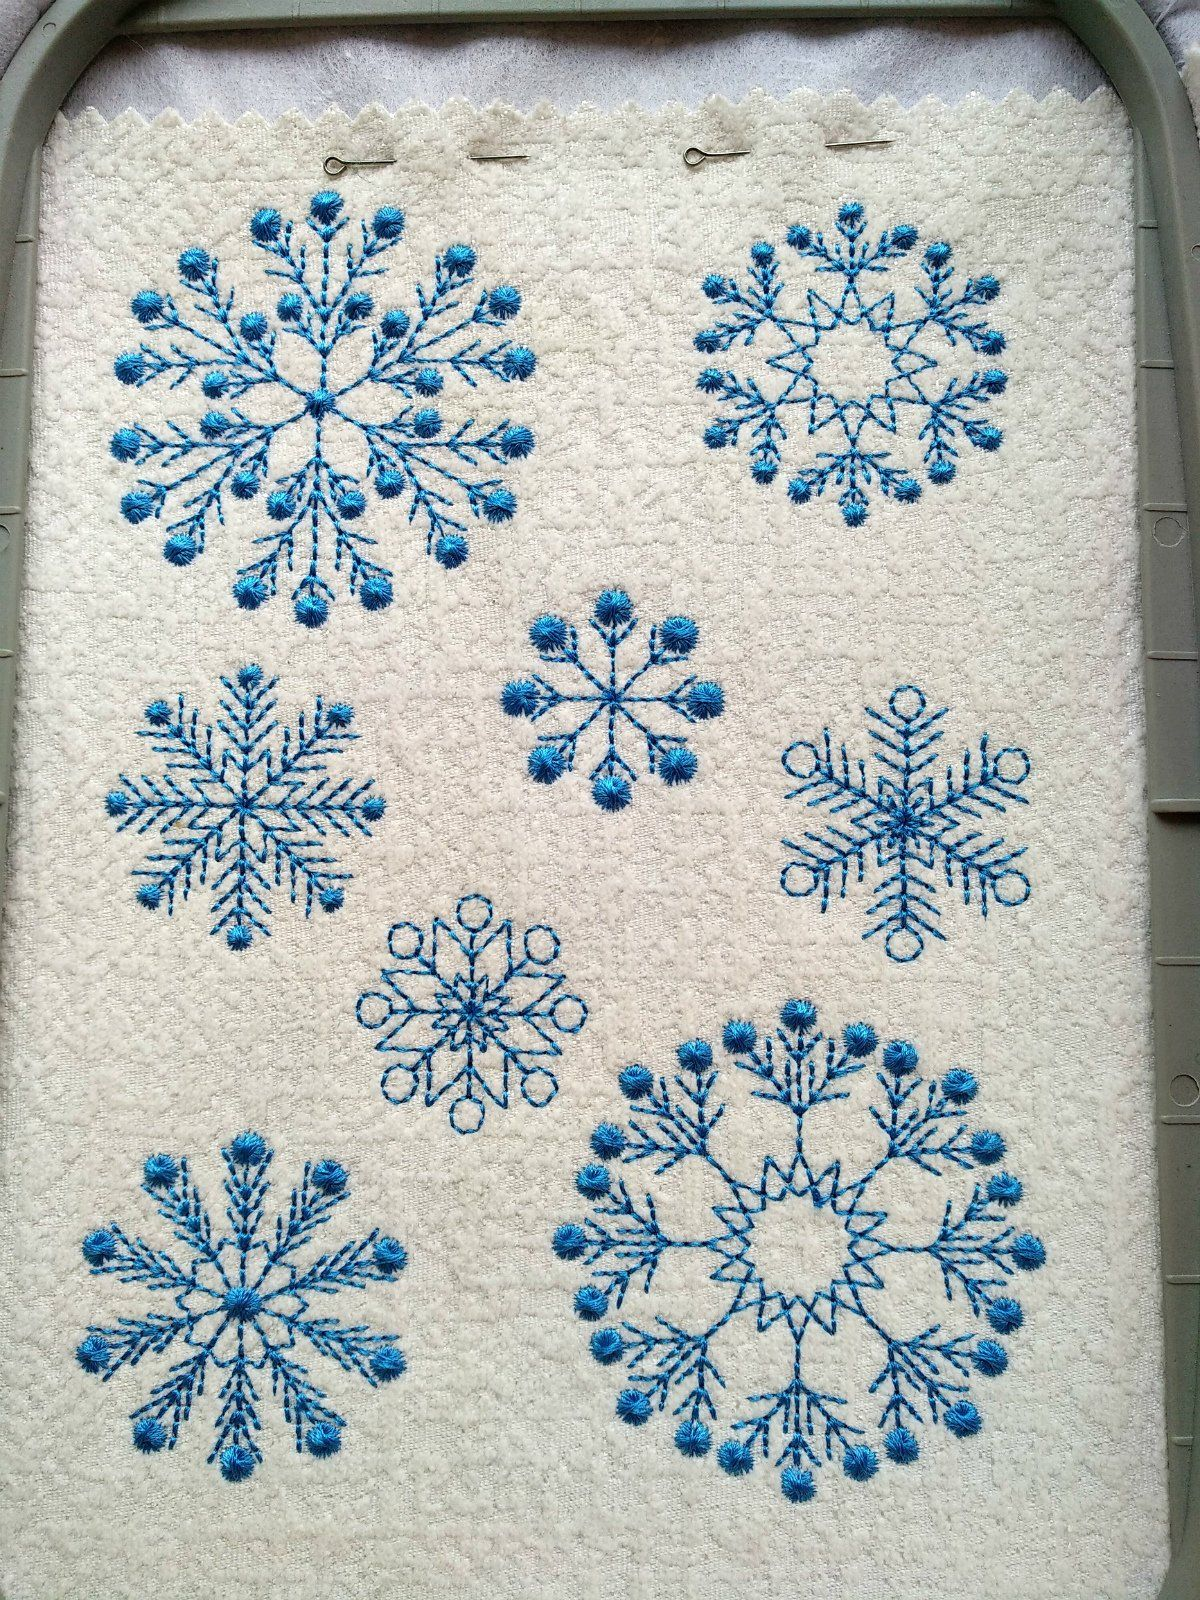 Winter Embroidery Design Snowflakes Embroidery Designs Etsy Snowflake Embroidery Snowflakes Embroidery Pattern Machine Embroidery Designs